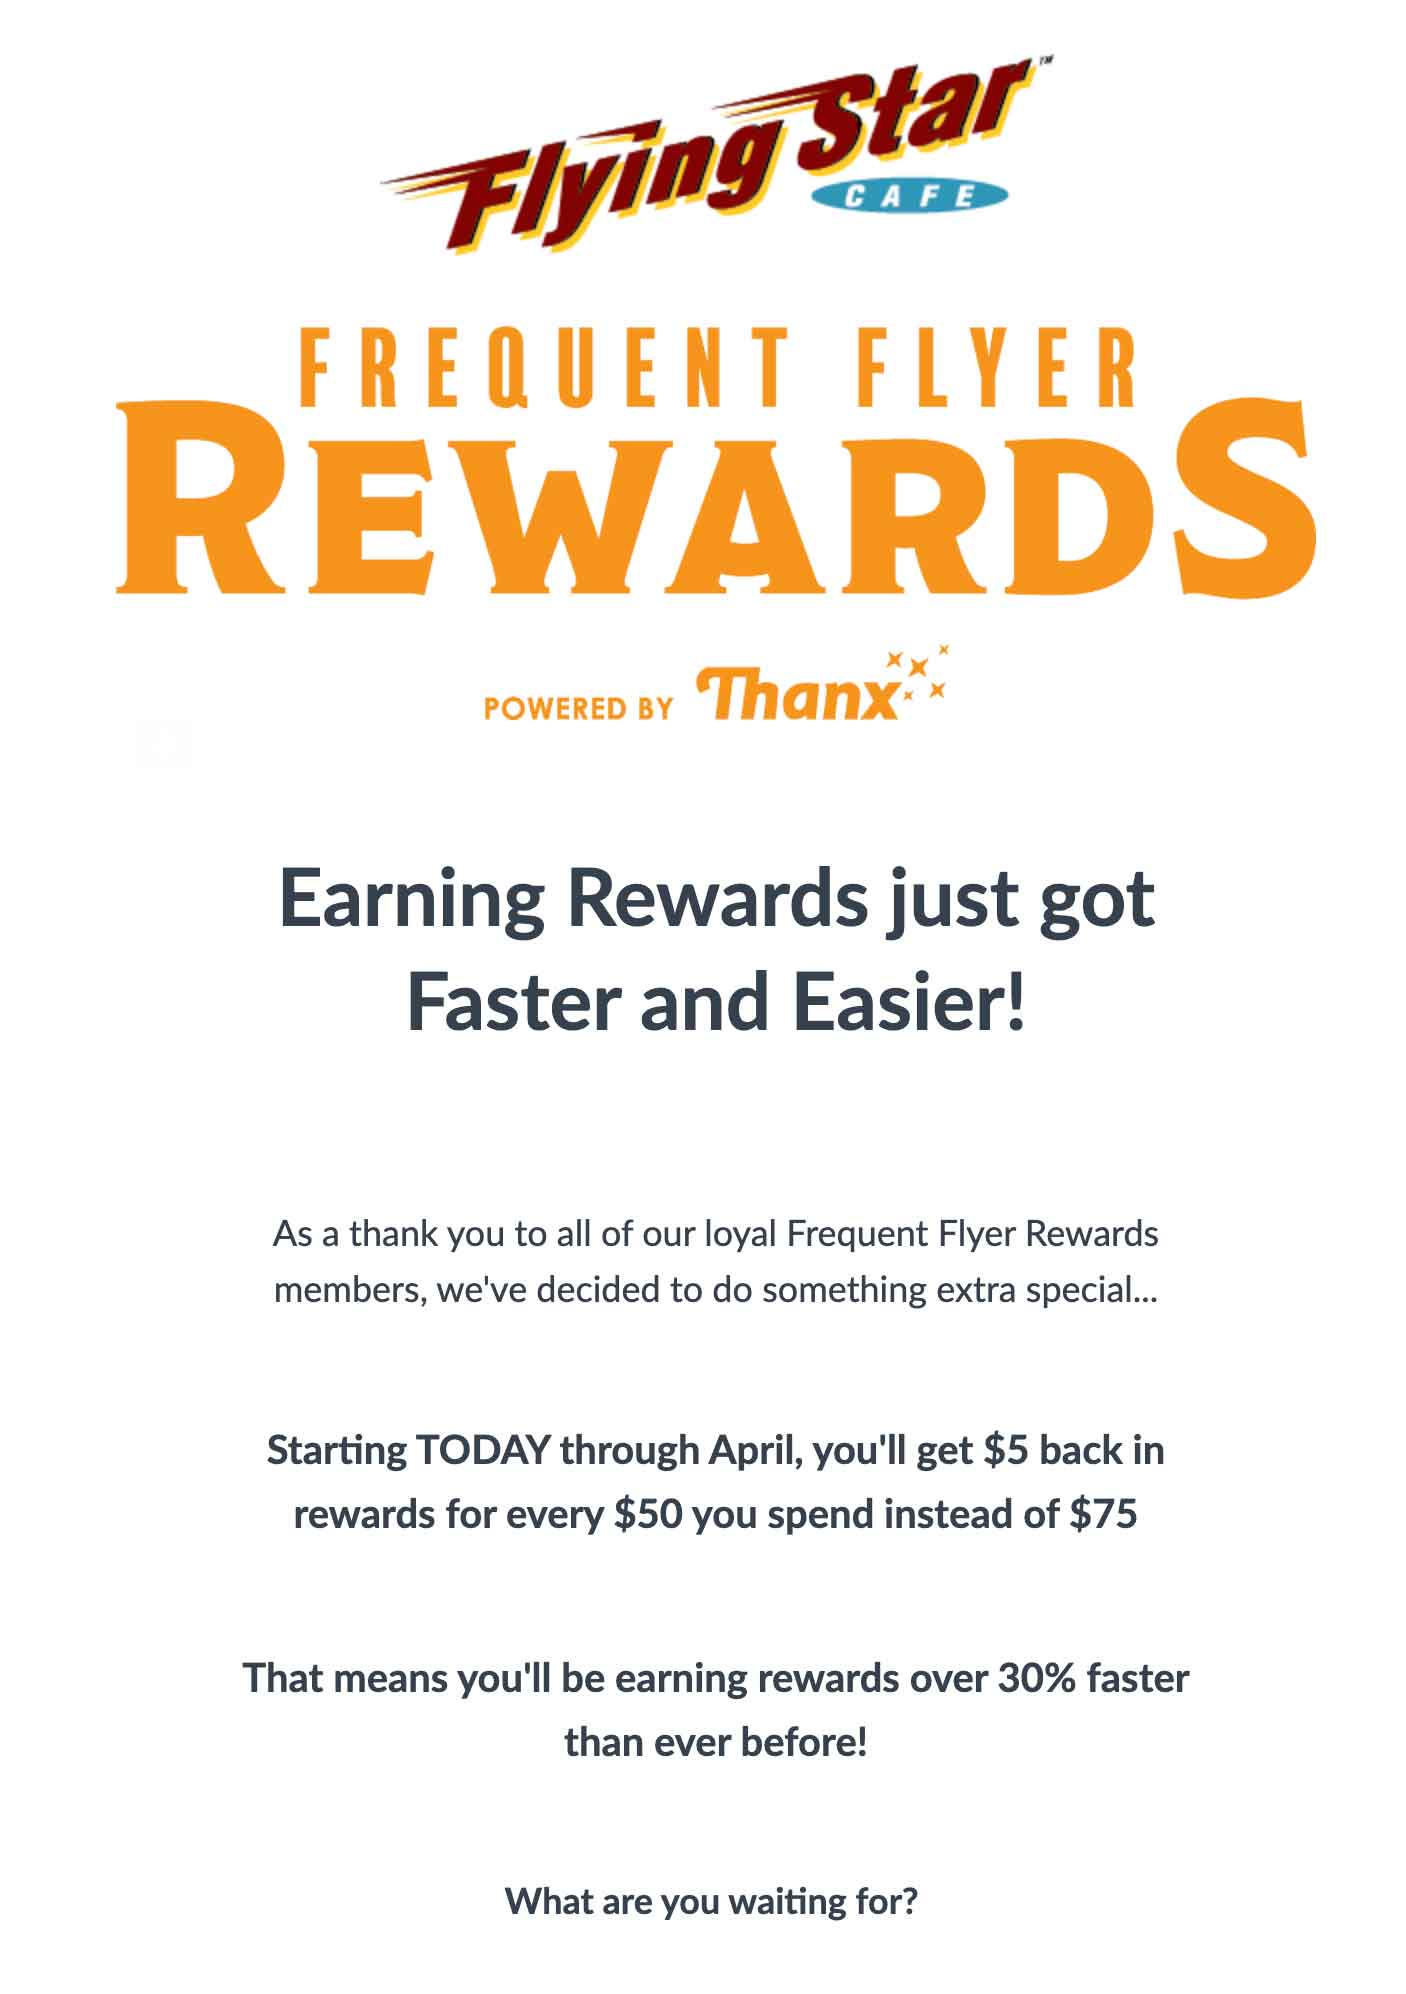 Flying Star Cafe Frequent Flyer Rewards email